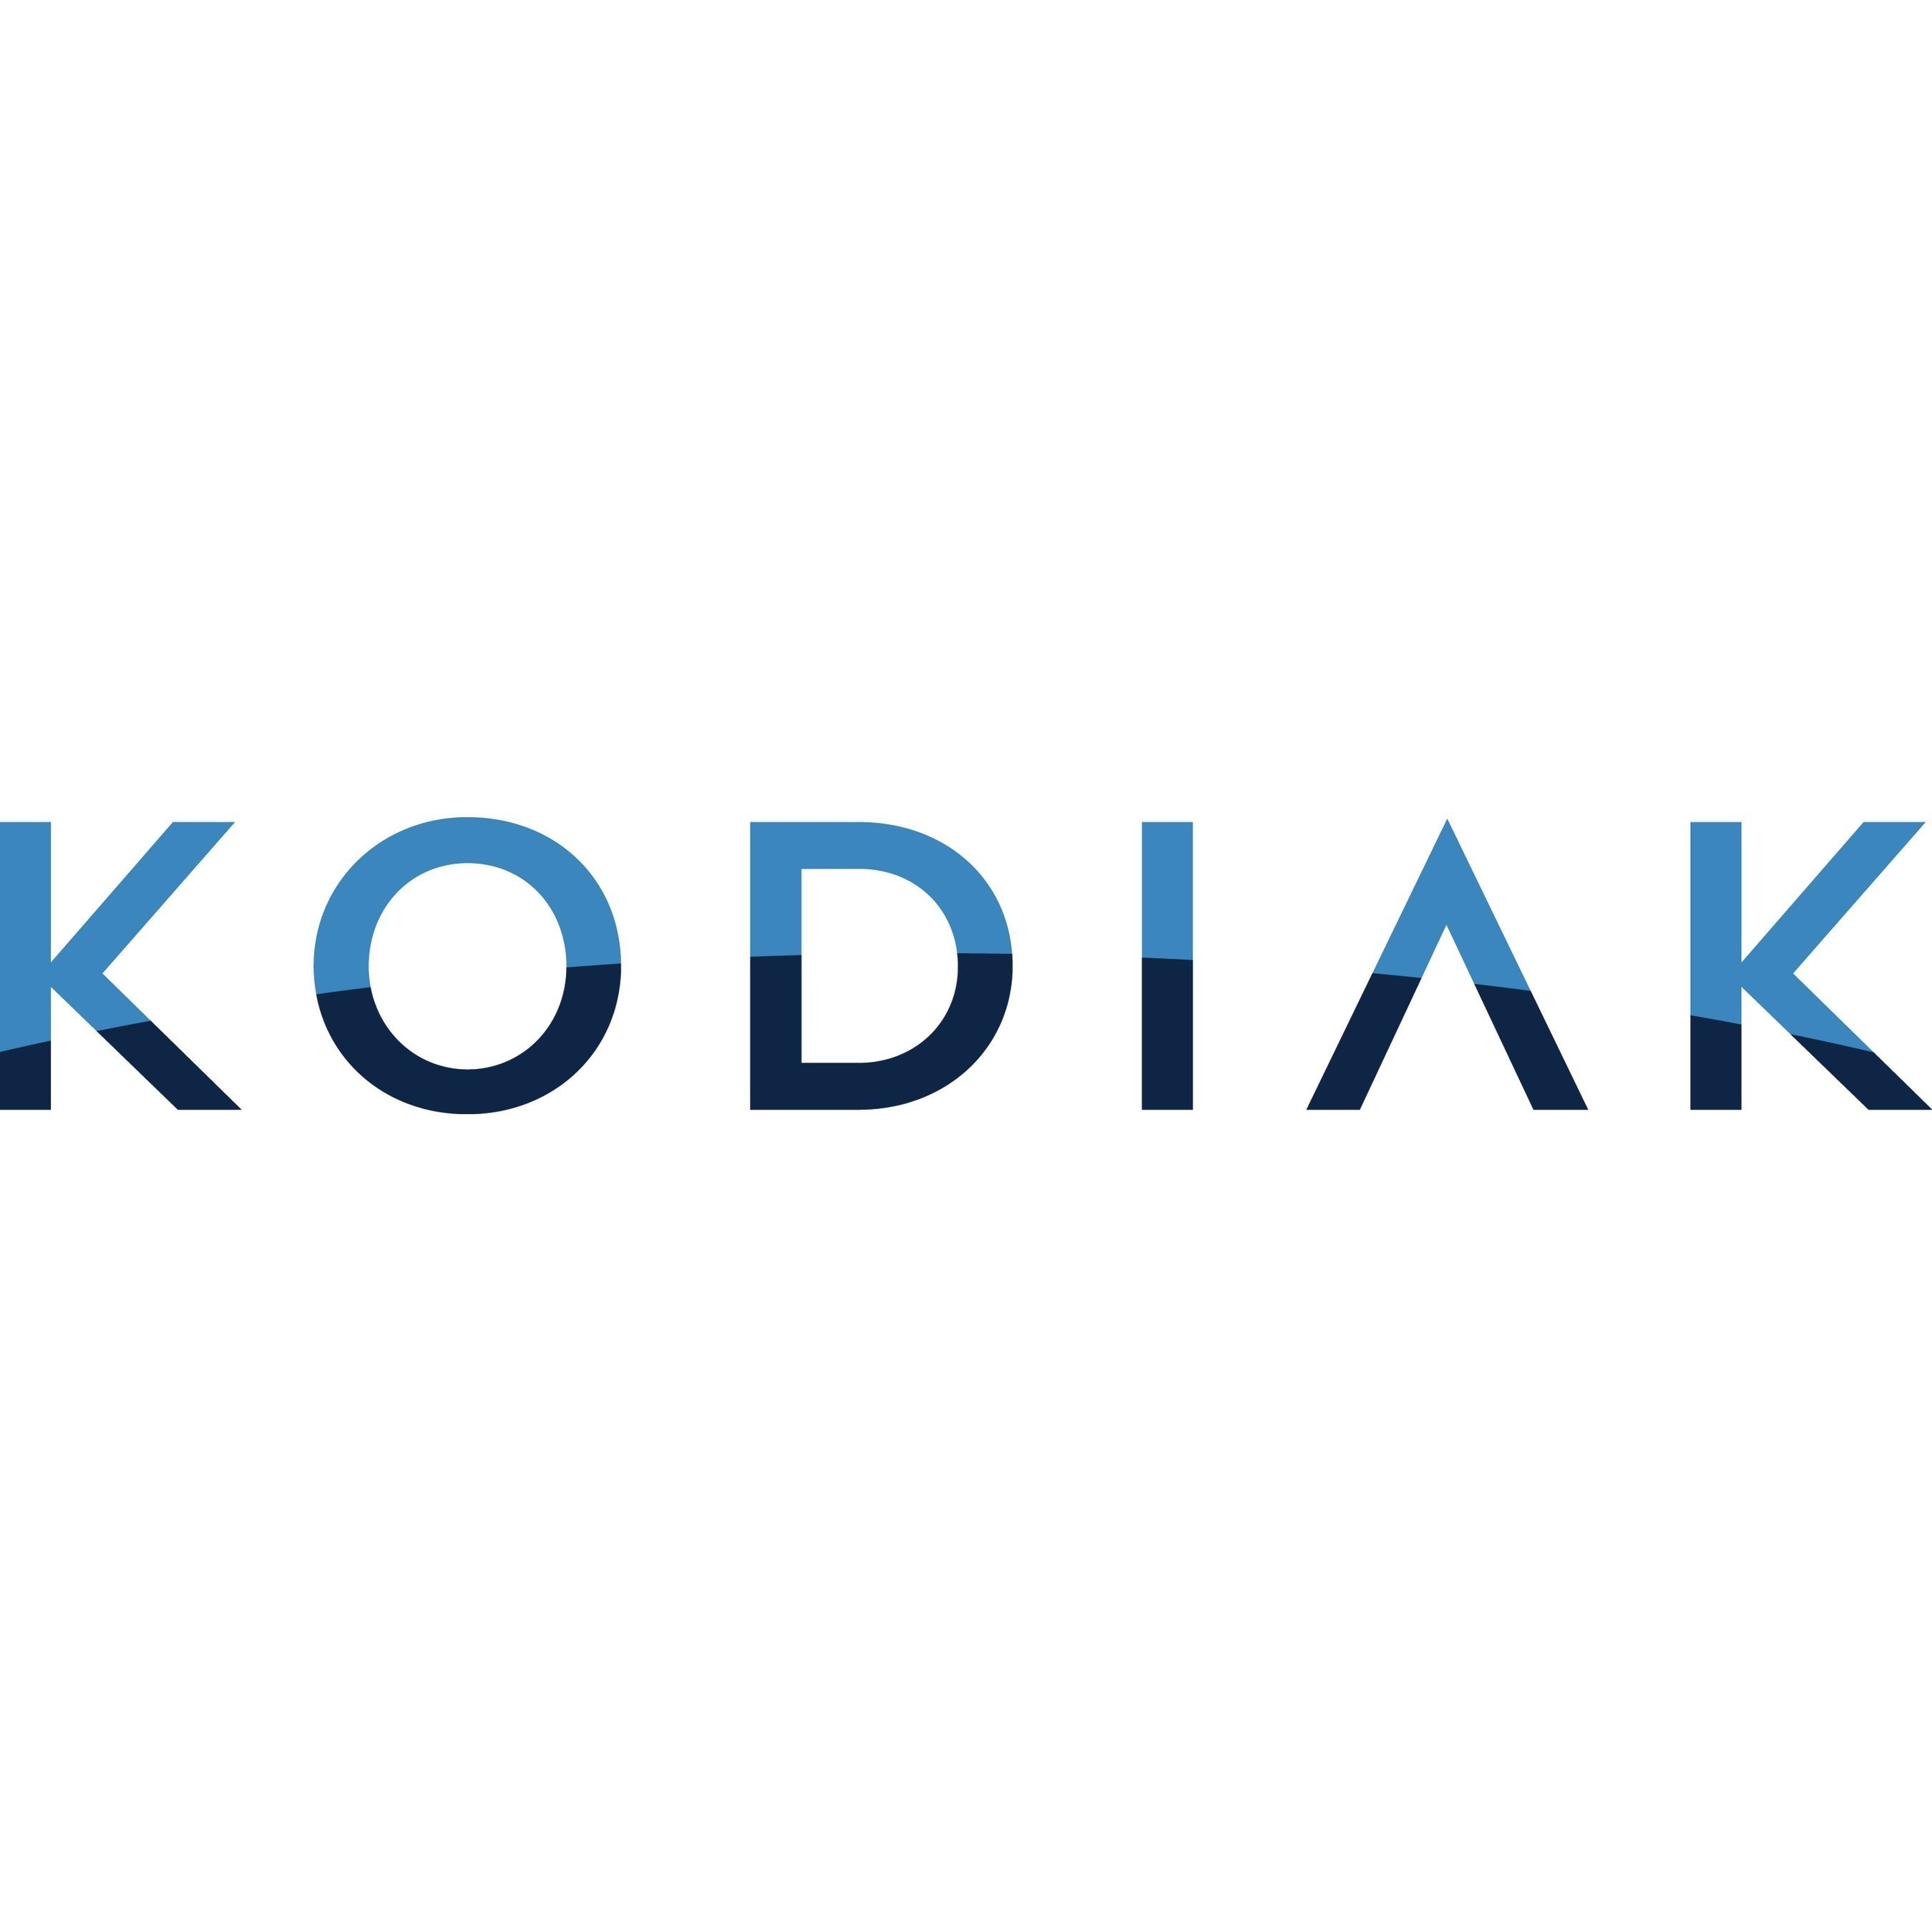 Kodiak Sciences Announces Completion of 12-Week Phase 1a Study of